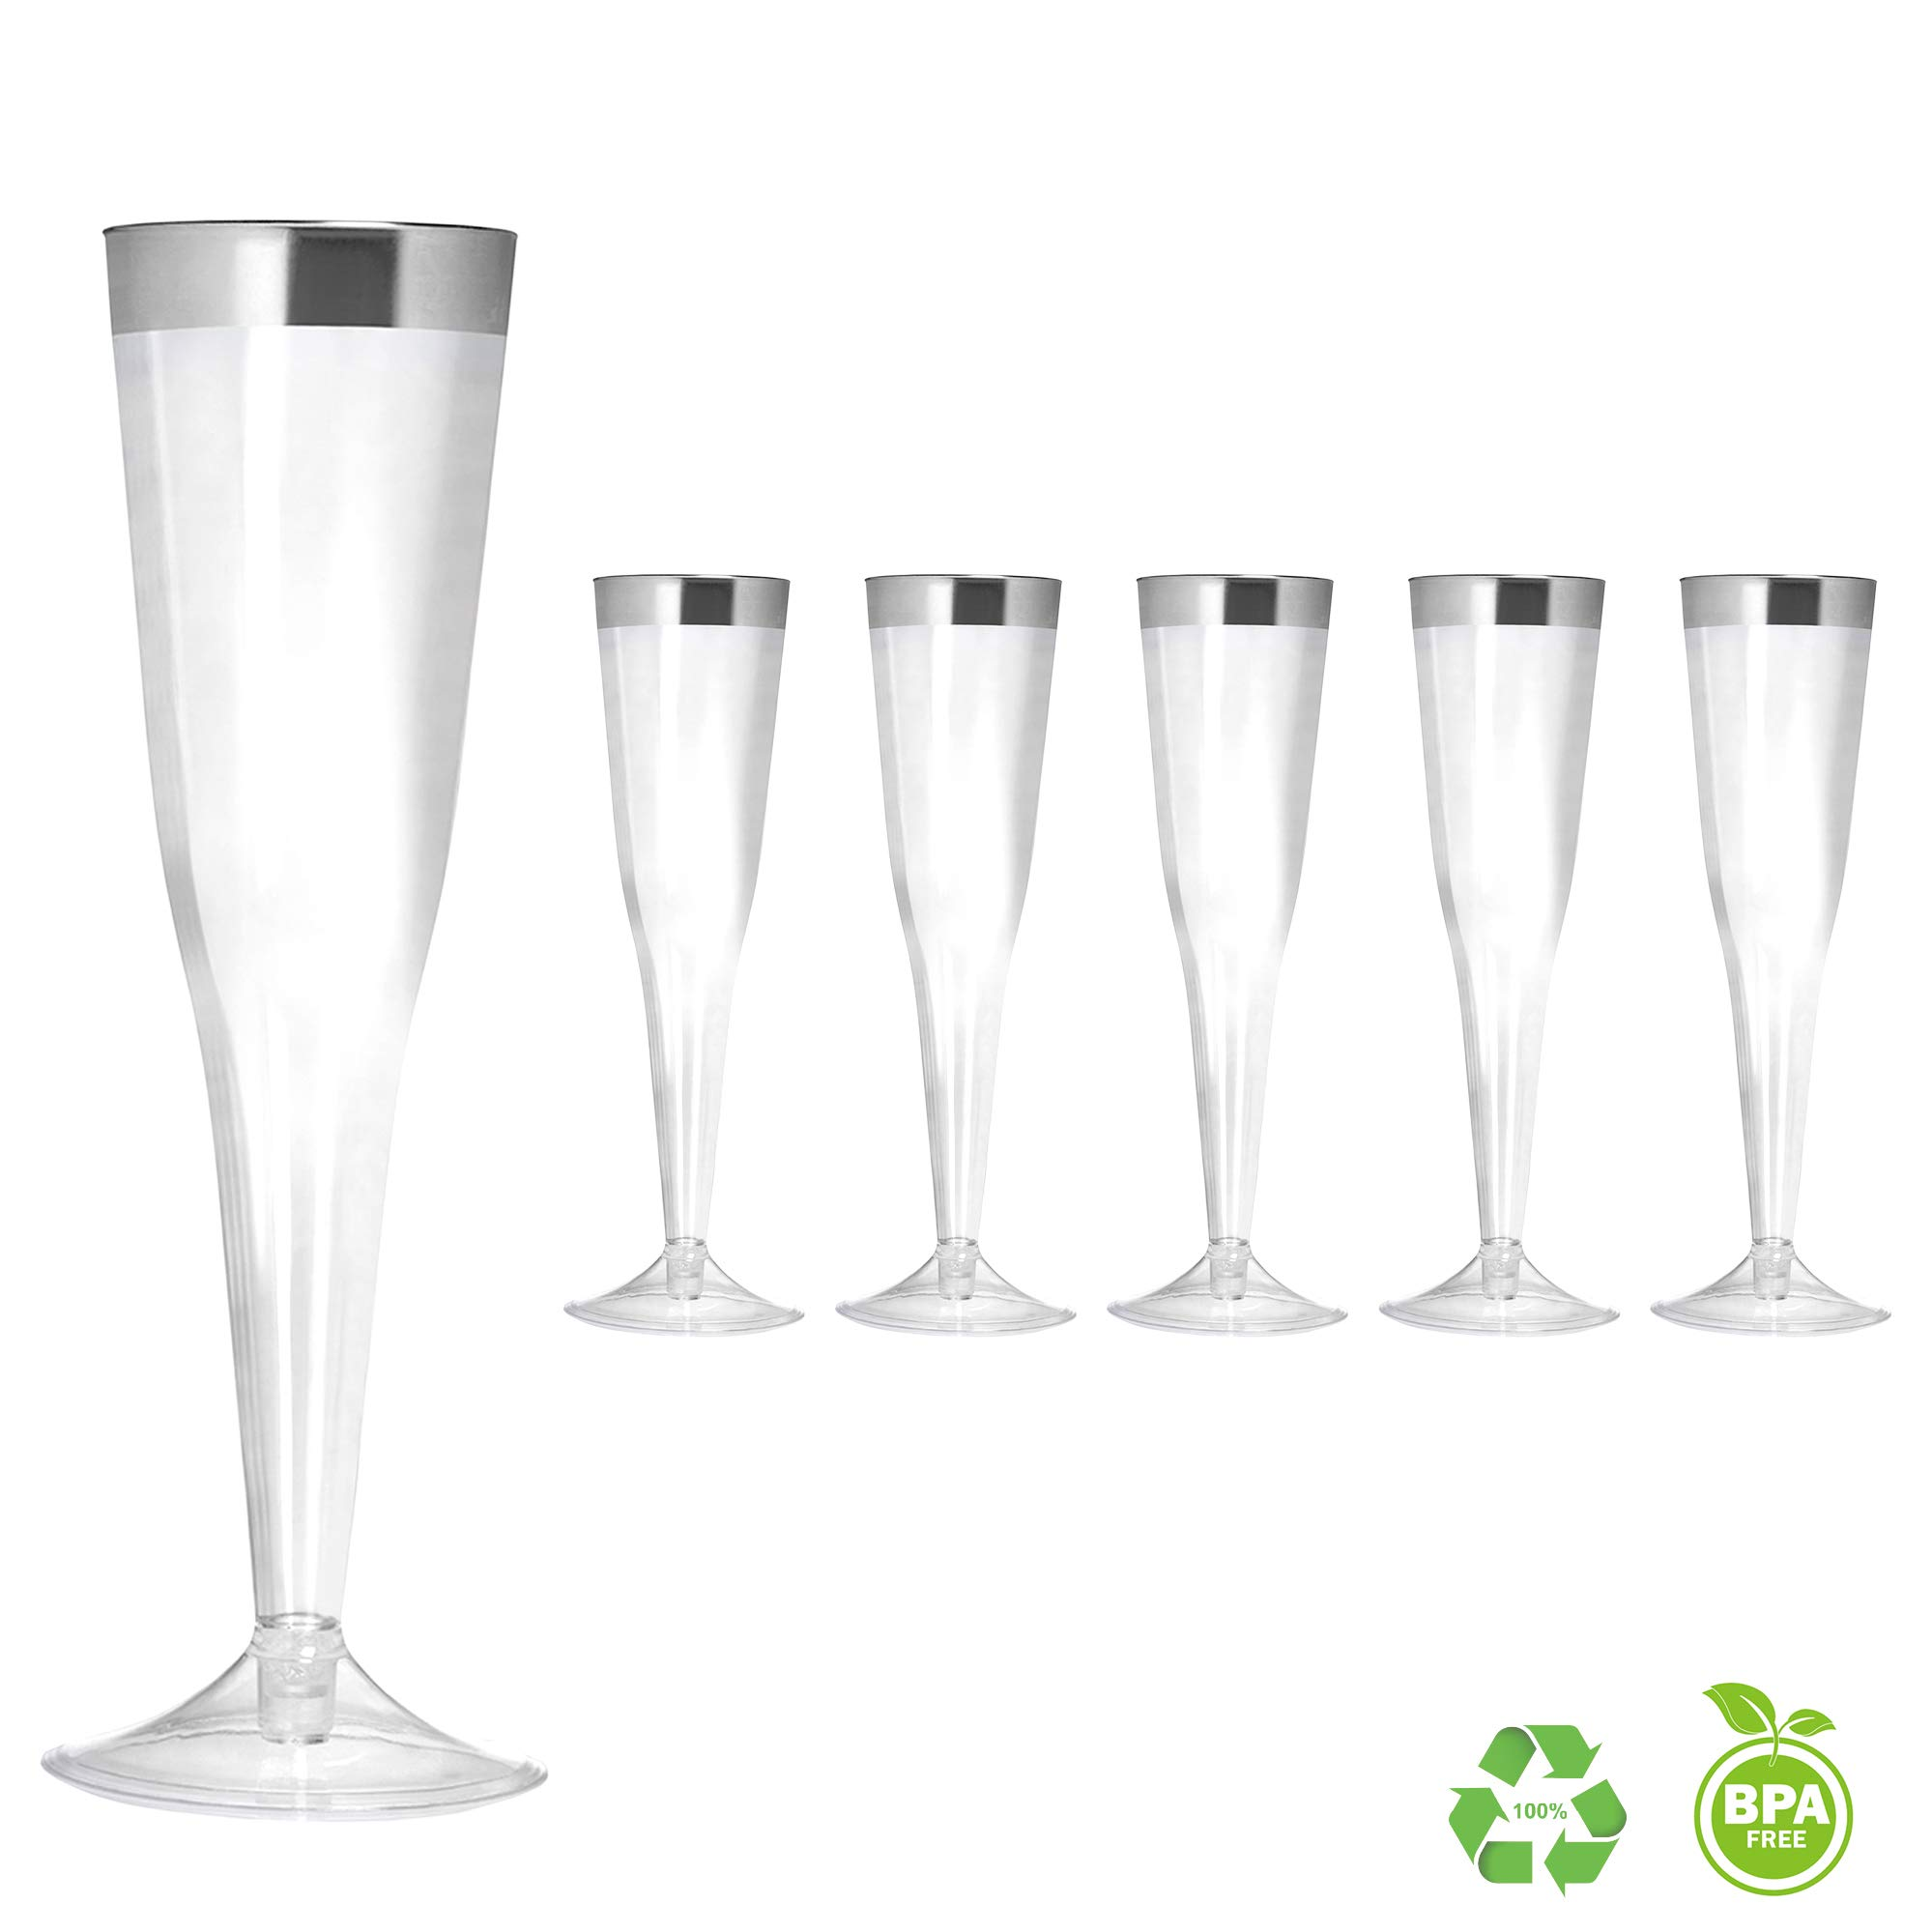 6 Ounce Silver Rimmed Clear Plastic Champagne Flutes Fancy Disposable Cups with Silver Rim Perfect for Holiday Party Wedding and Everyday Occasions (50 Pack)